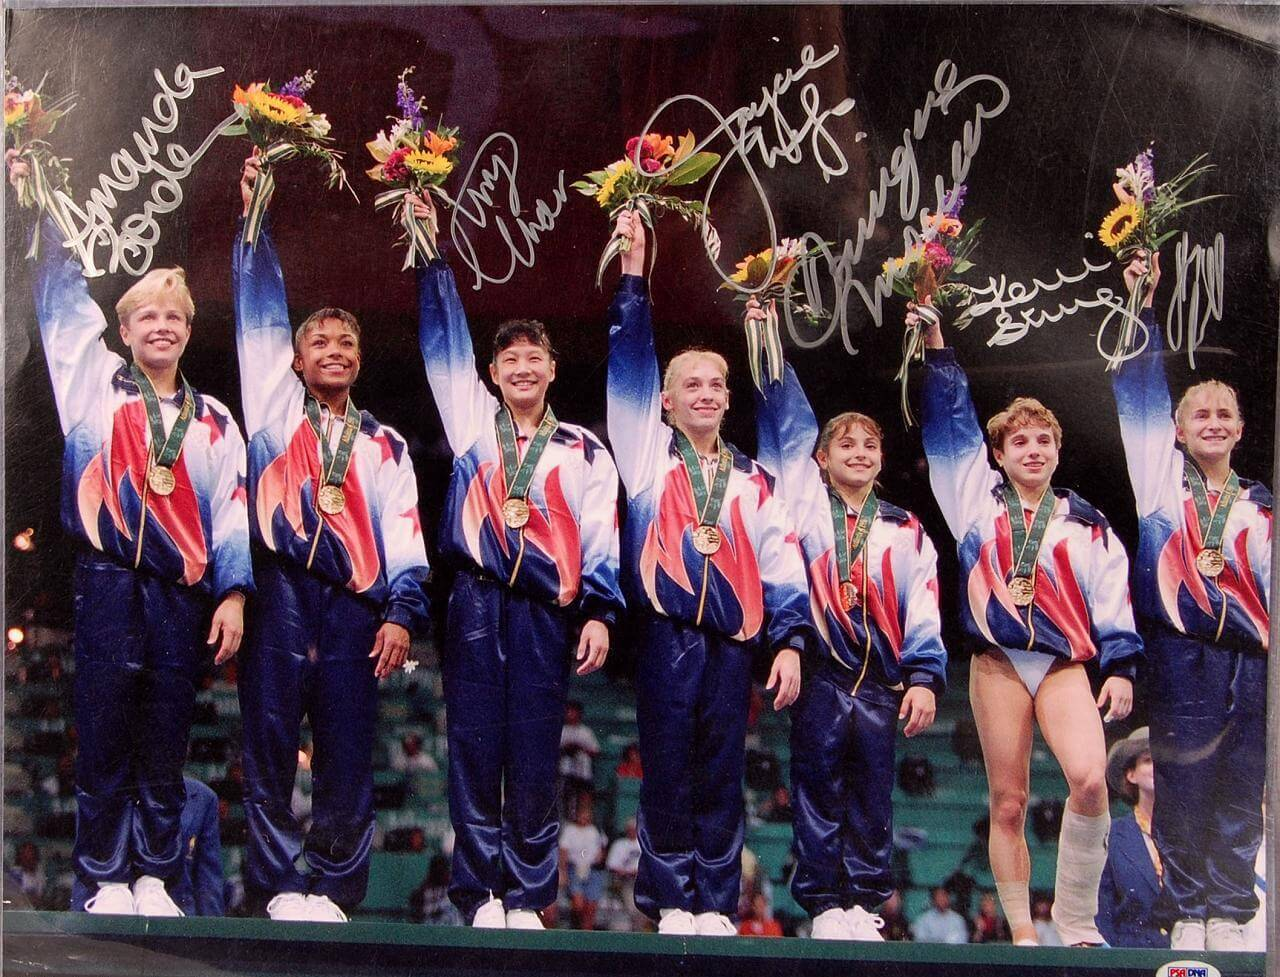 1996 Women's Olympic Gymnastics Team Autographed by DOMINIQUE MOCEANU and 5 others.72528_01_lg